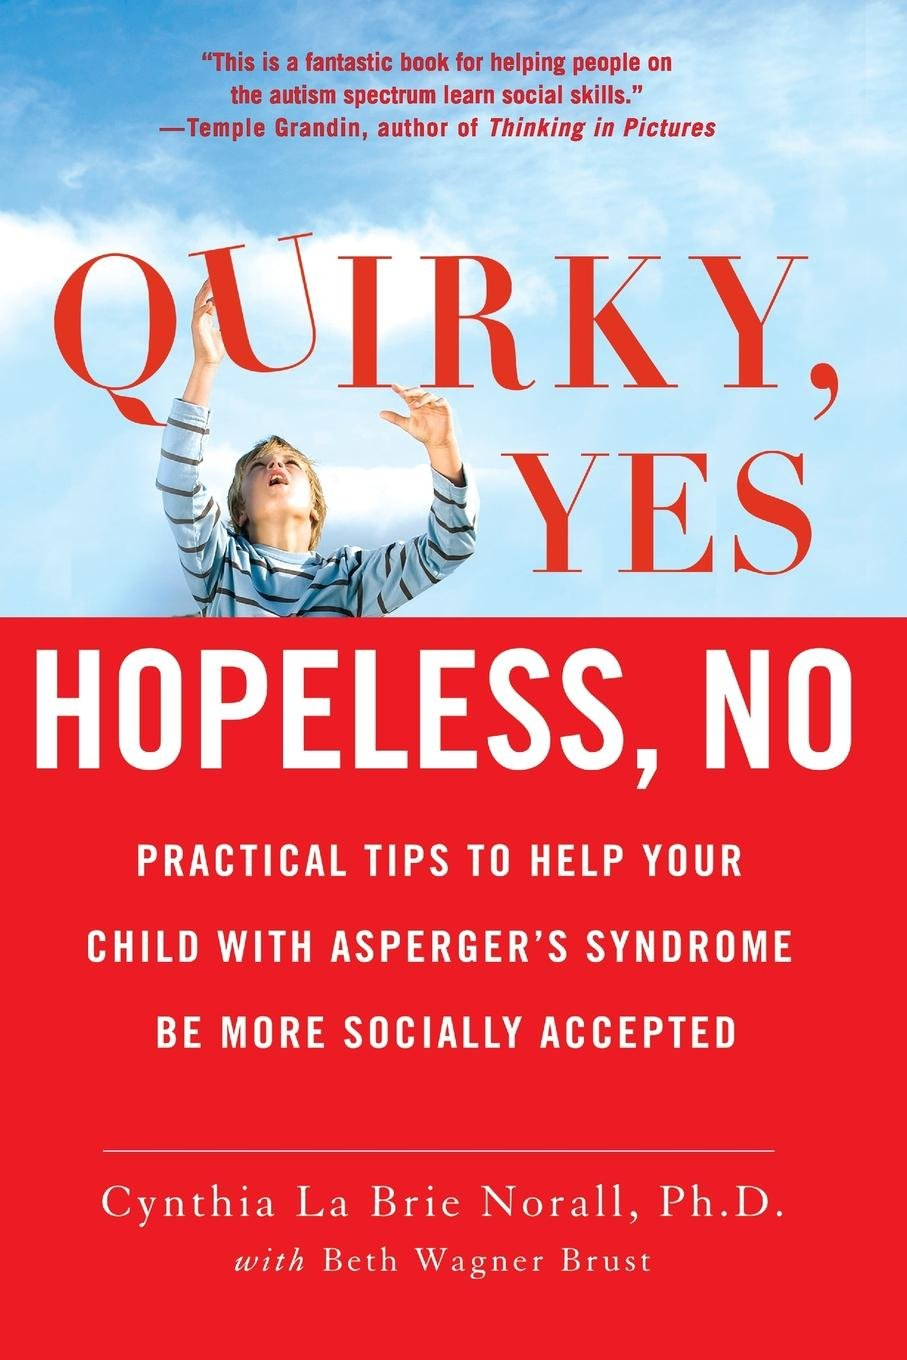 Read Online Quirky, Yes---Hopeless, No: Practical Tips to Help Your Child with Asperger's Syndrome Be More Socially Accepted PDF